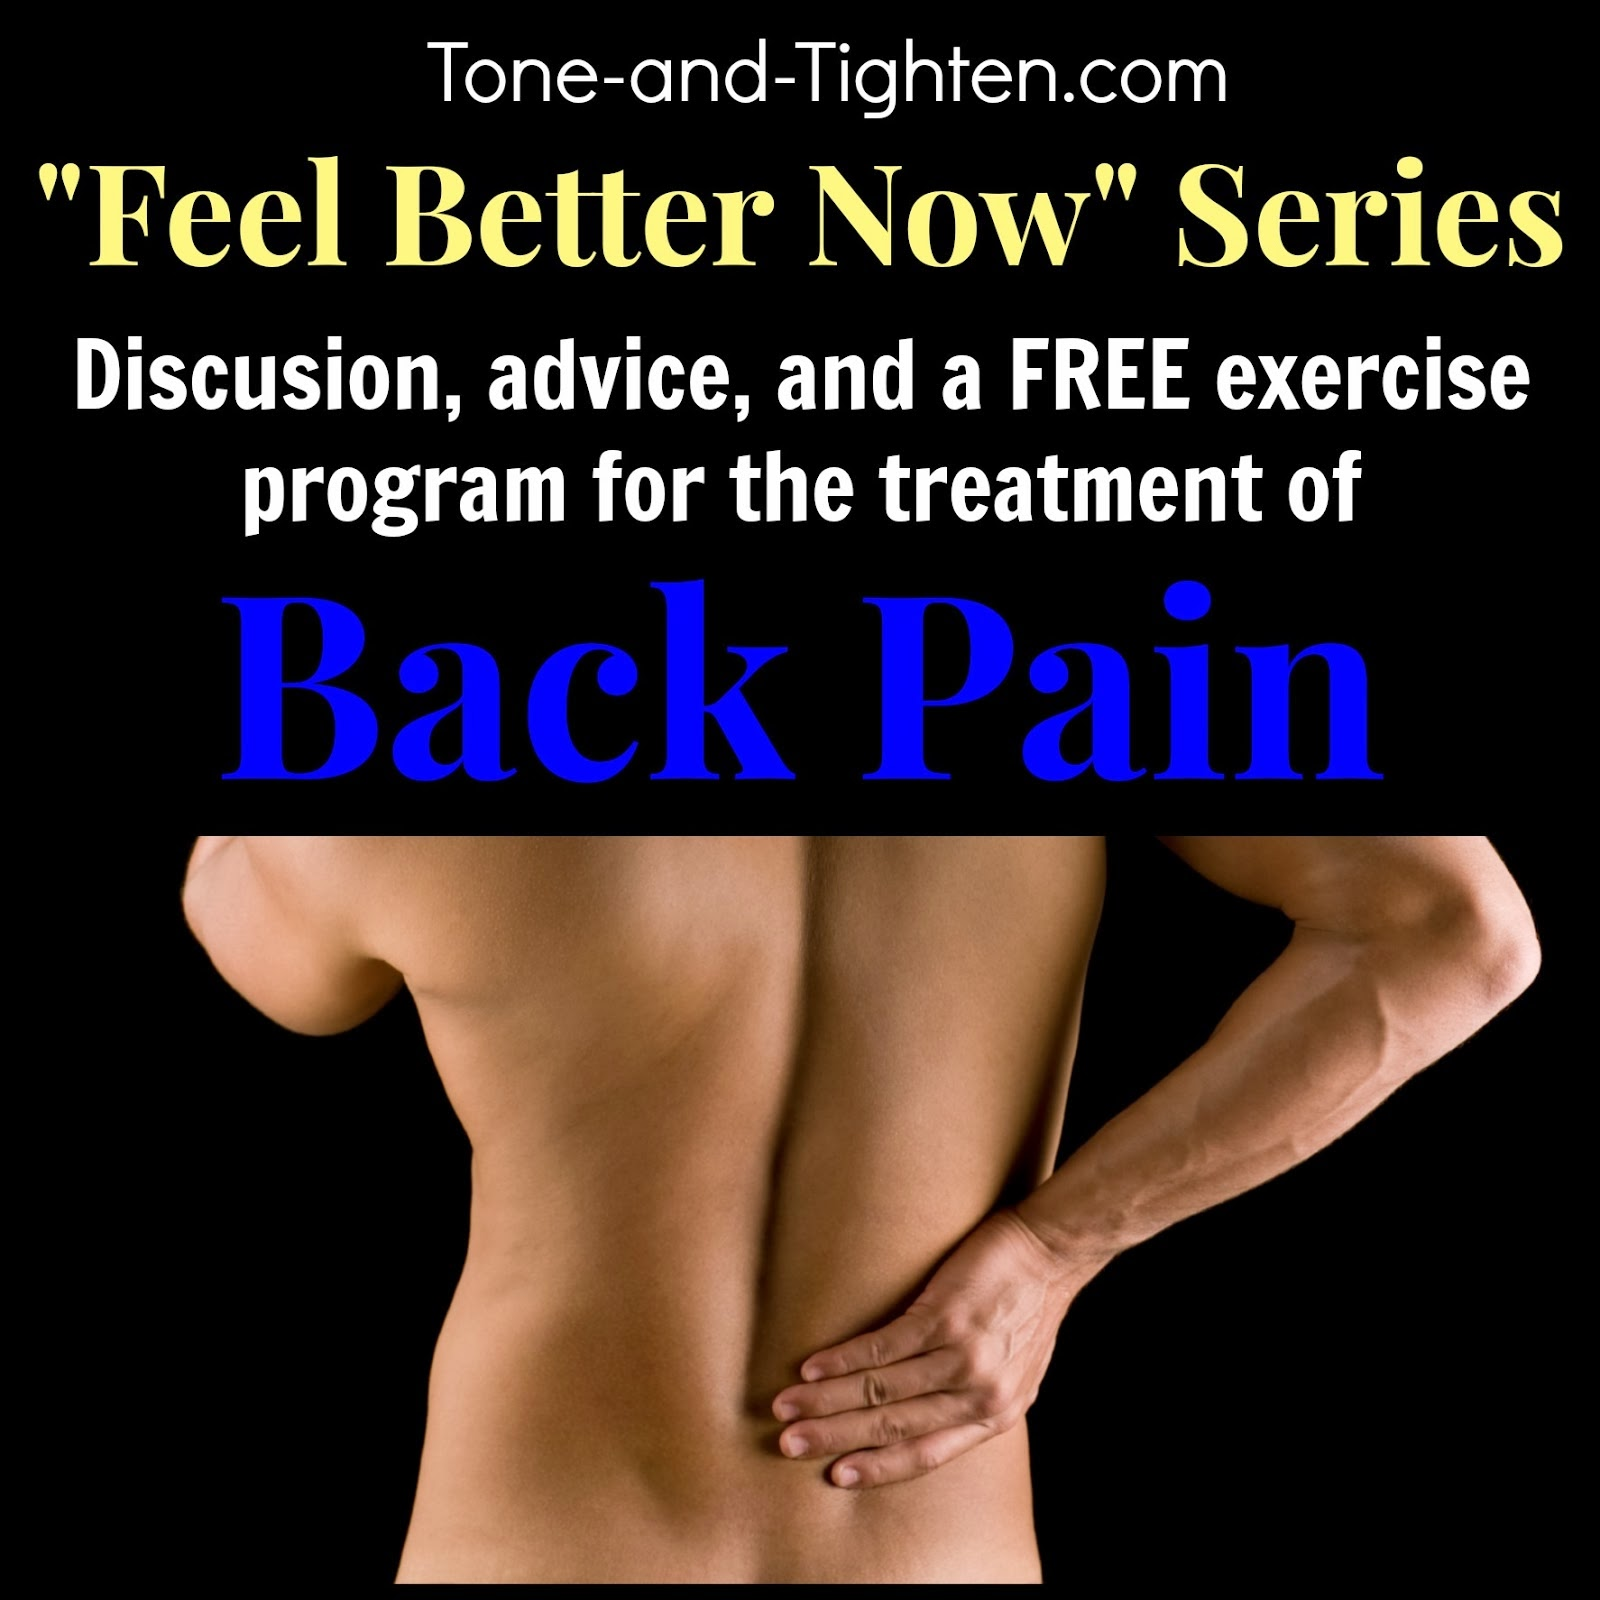 http://www.toni-and-tighten.com/2014/02/new-feel-better-now-series-how-to-treat.html